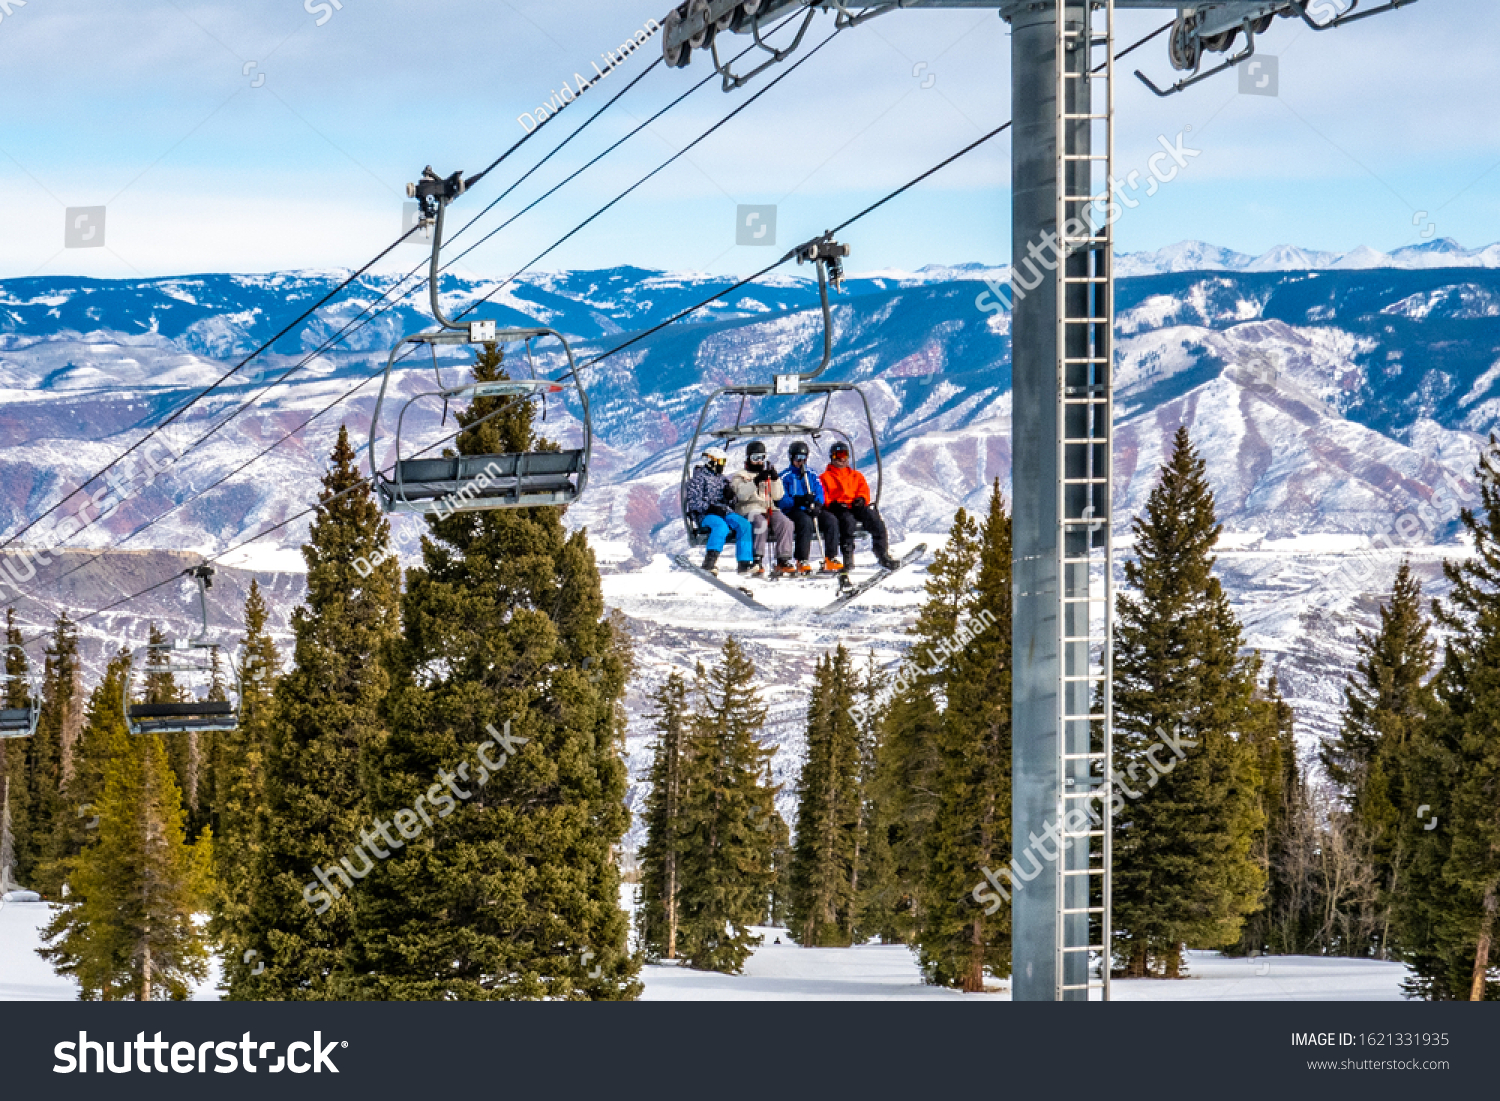 stock-photo-skiers-and-snowboarders-asce